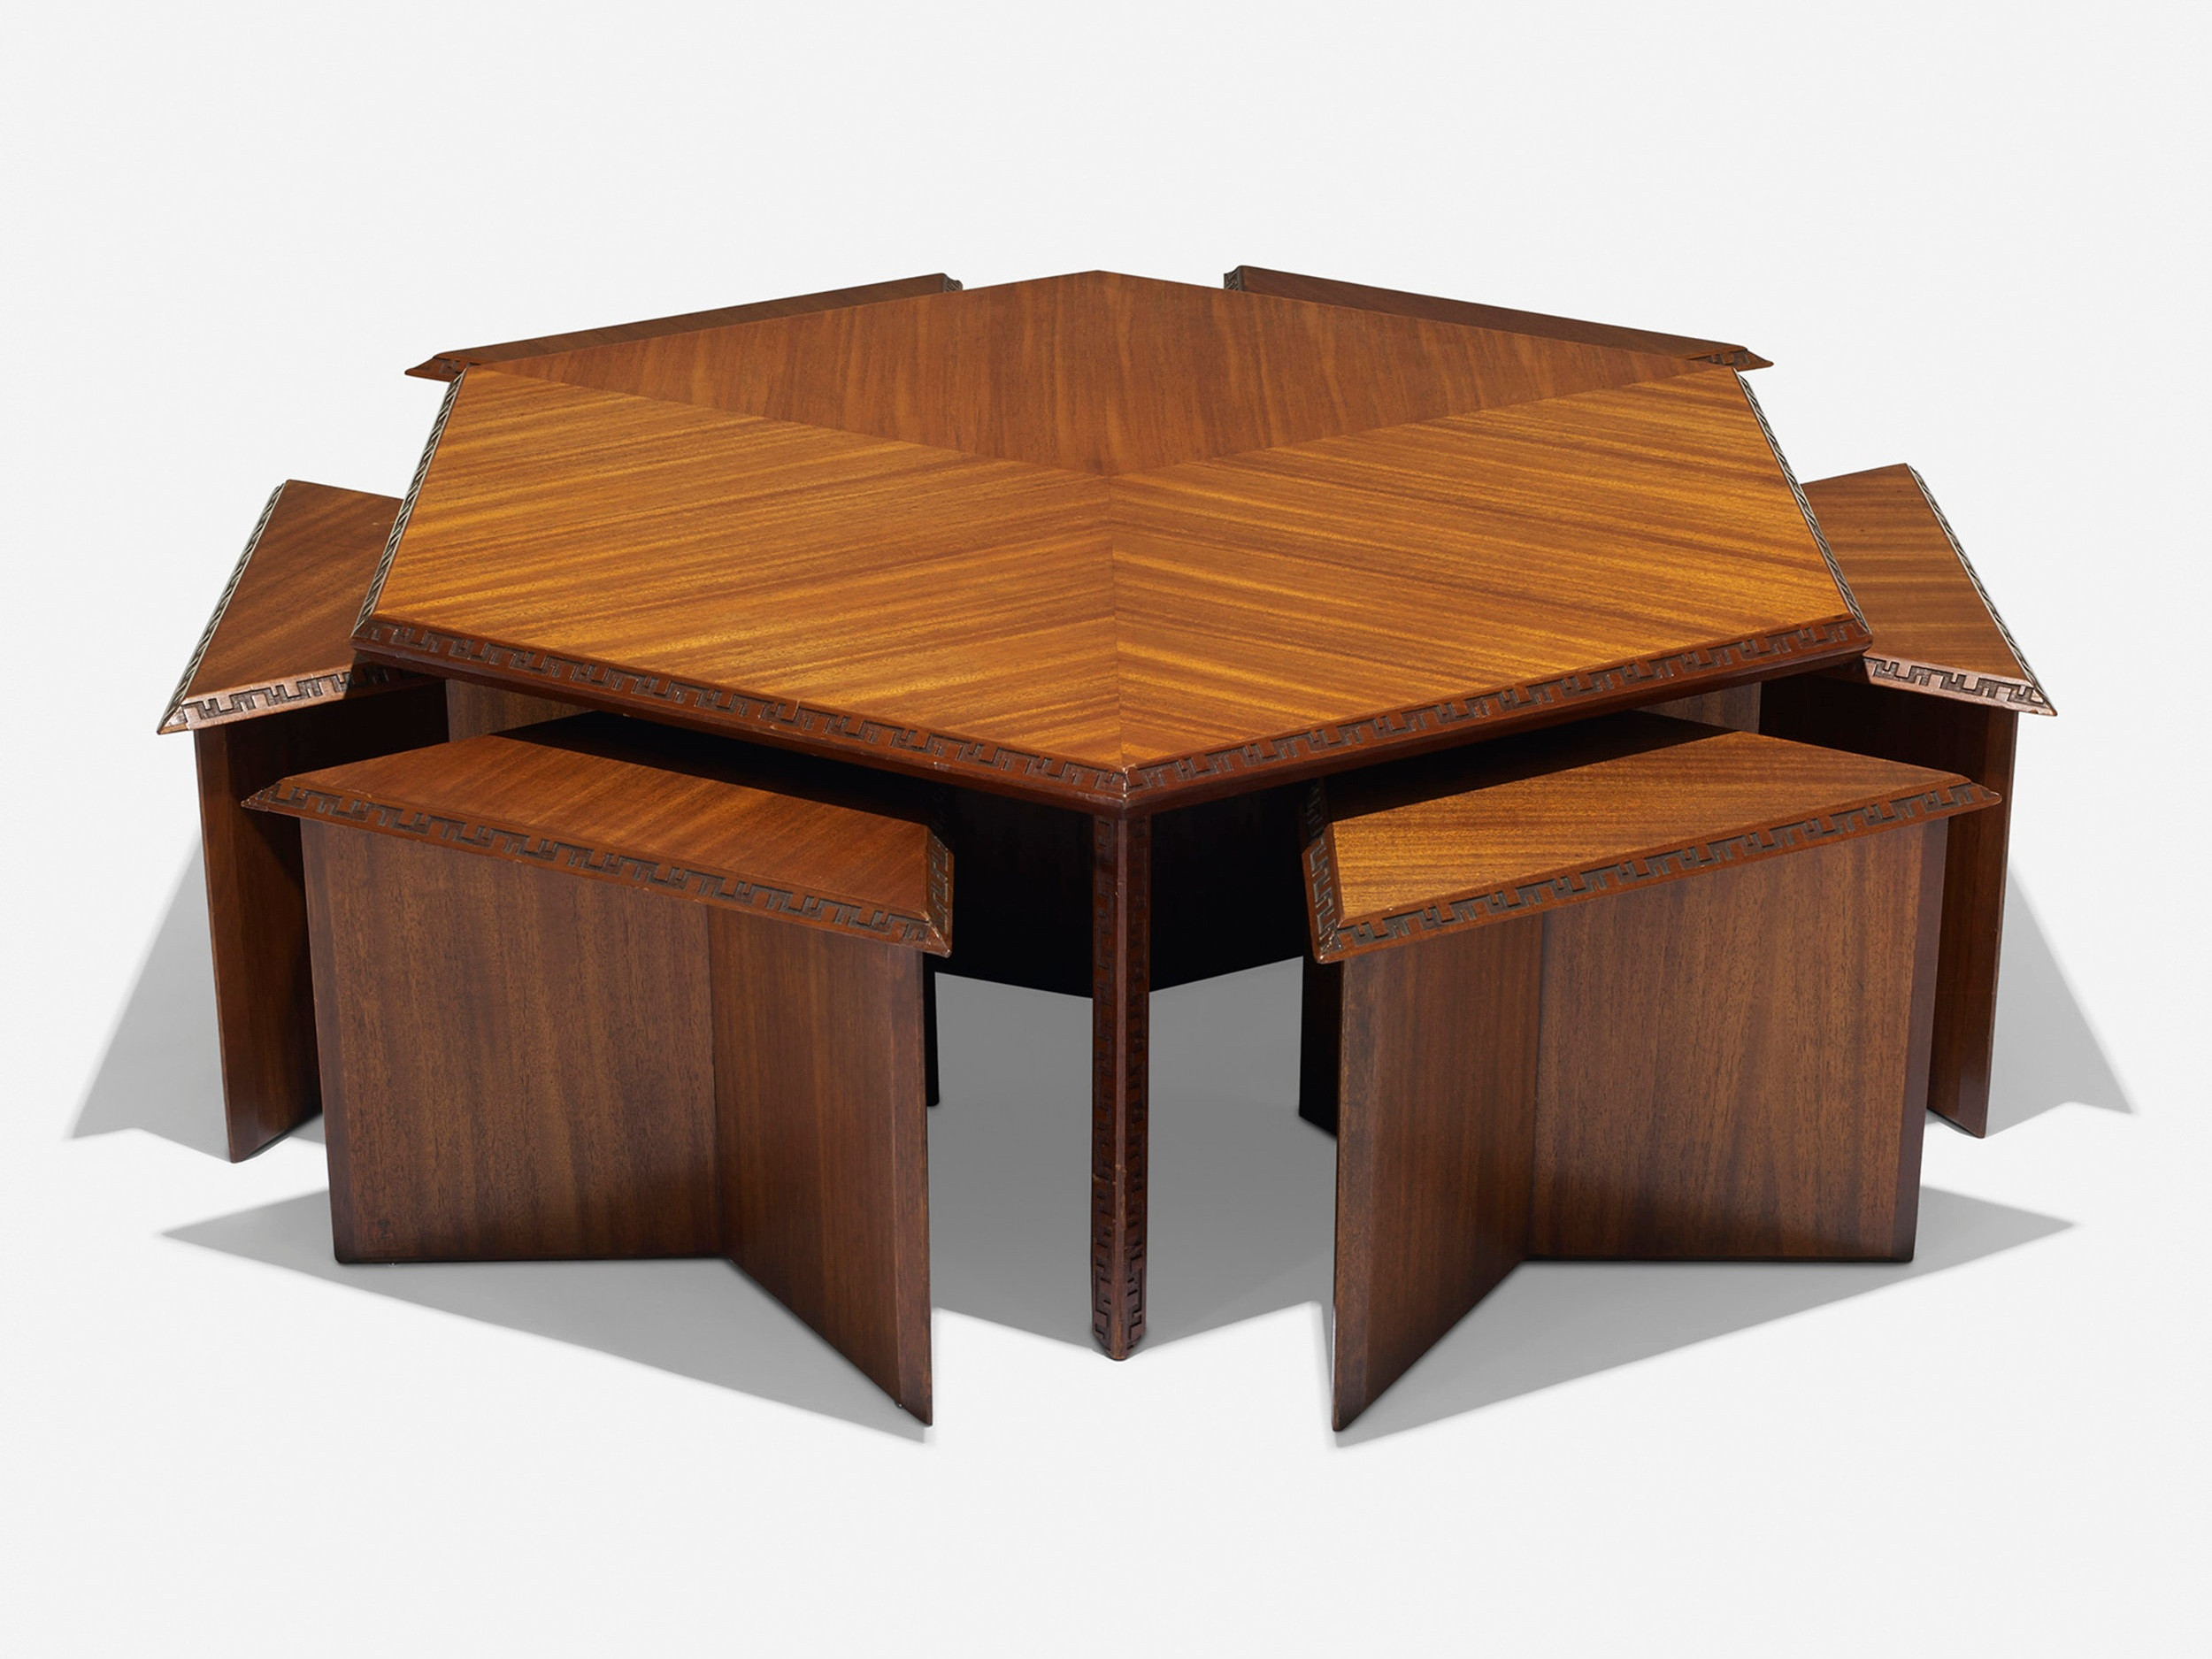 243_1_modern_design_march_2013_frank_lloyd_wright_table_model_453_c_and_six_stools_model_452_a__wright_auction.jpg